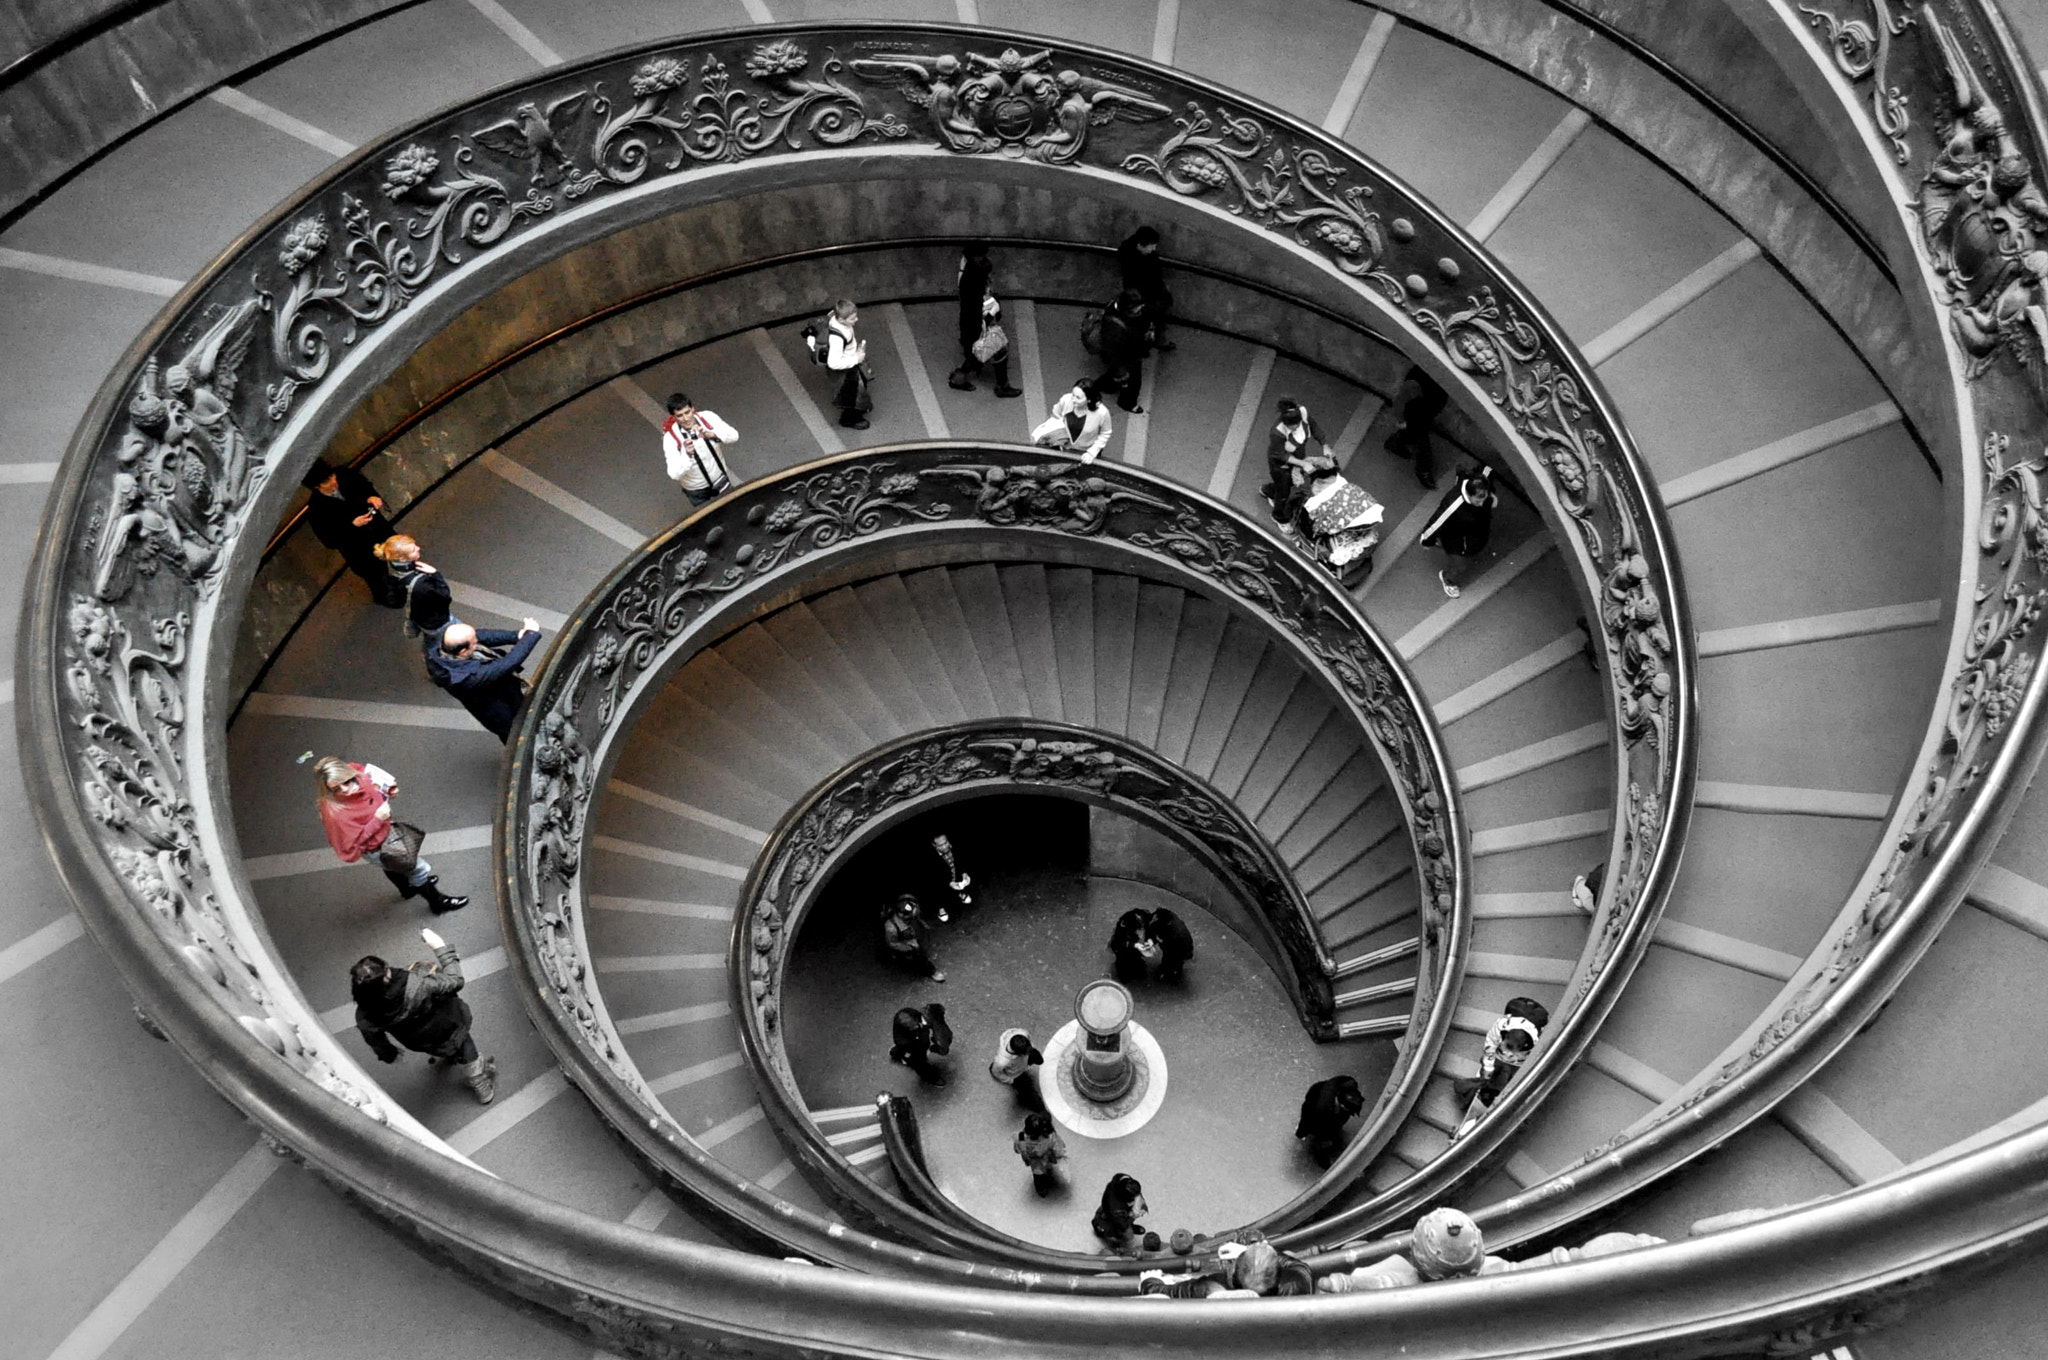 Photograph Vatican museum staircase by Sriganesh Murthi on 500px